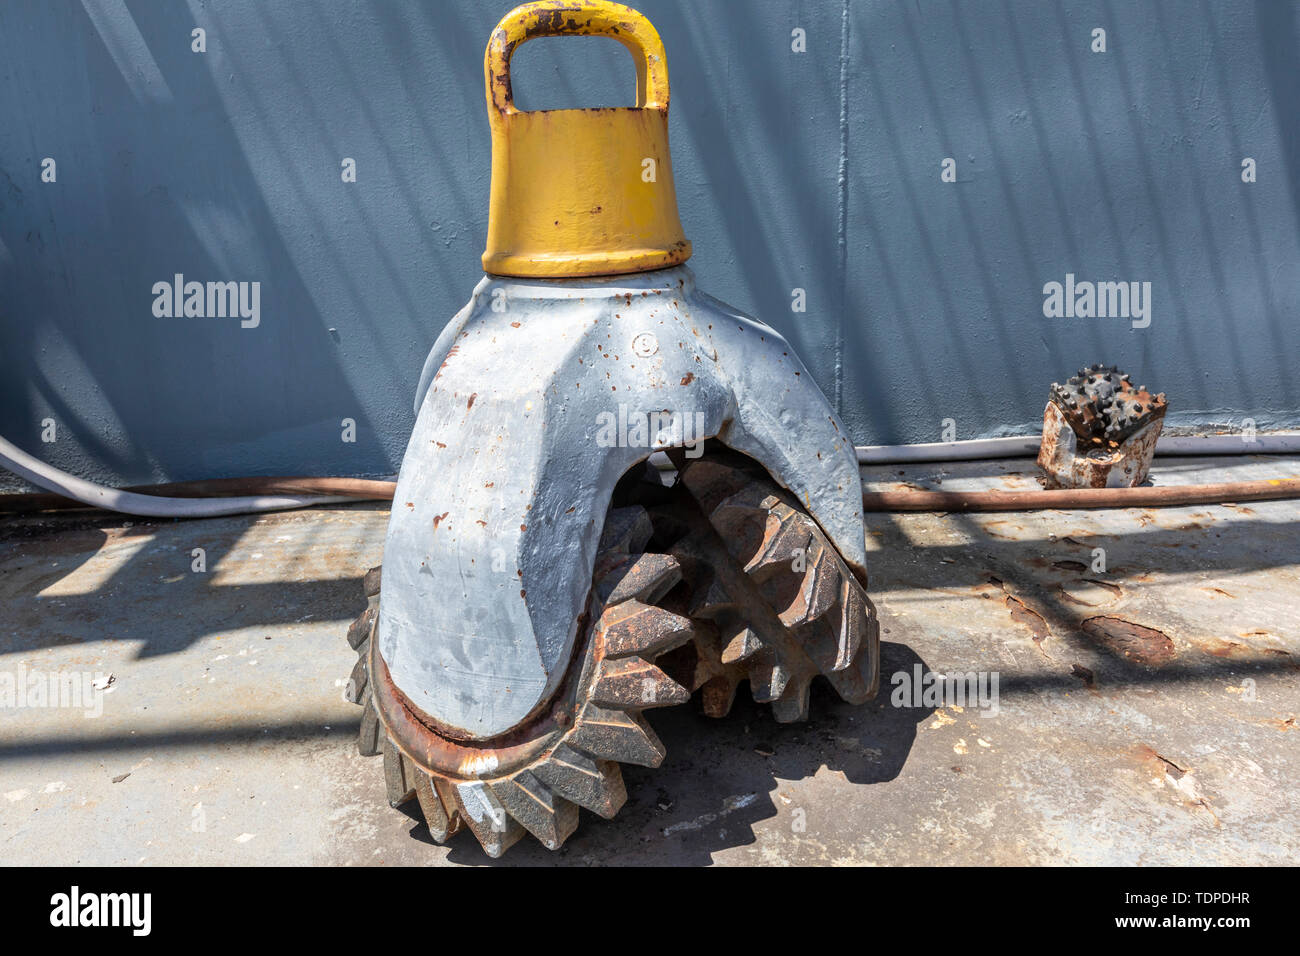 Morgan City, Louisiana - A drill bit on the deck of the 'Mr. Charlie' offshore oil drilling rig, which is now a tourist attraction and training facili - Stock Image